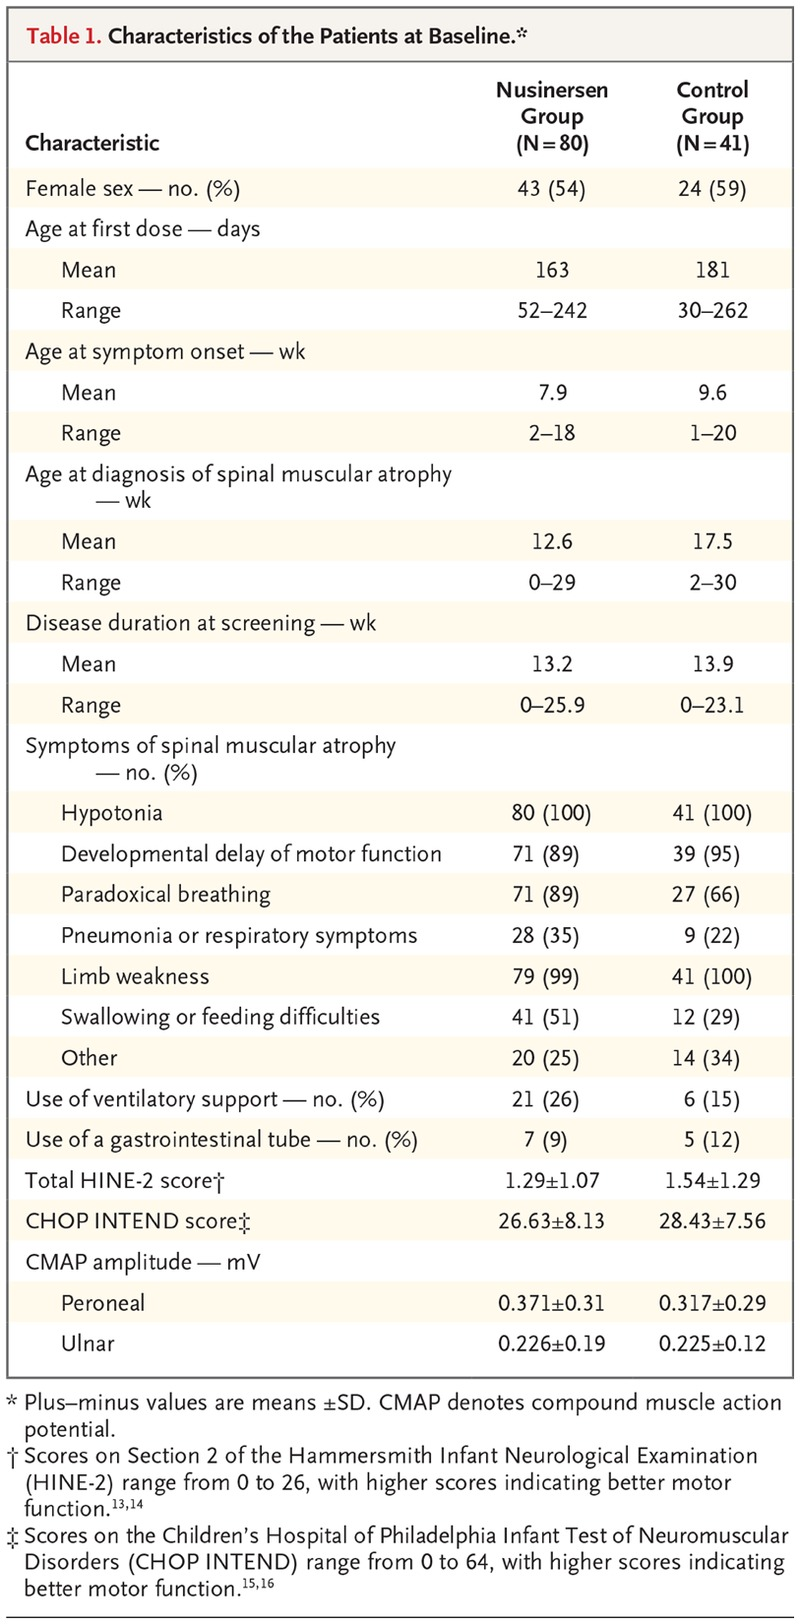 Nusinersen versus Sham Control in Infantile-Onset Spinal Muscular